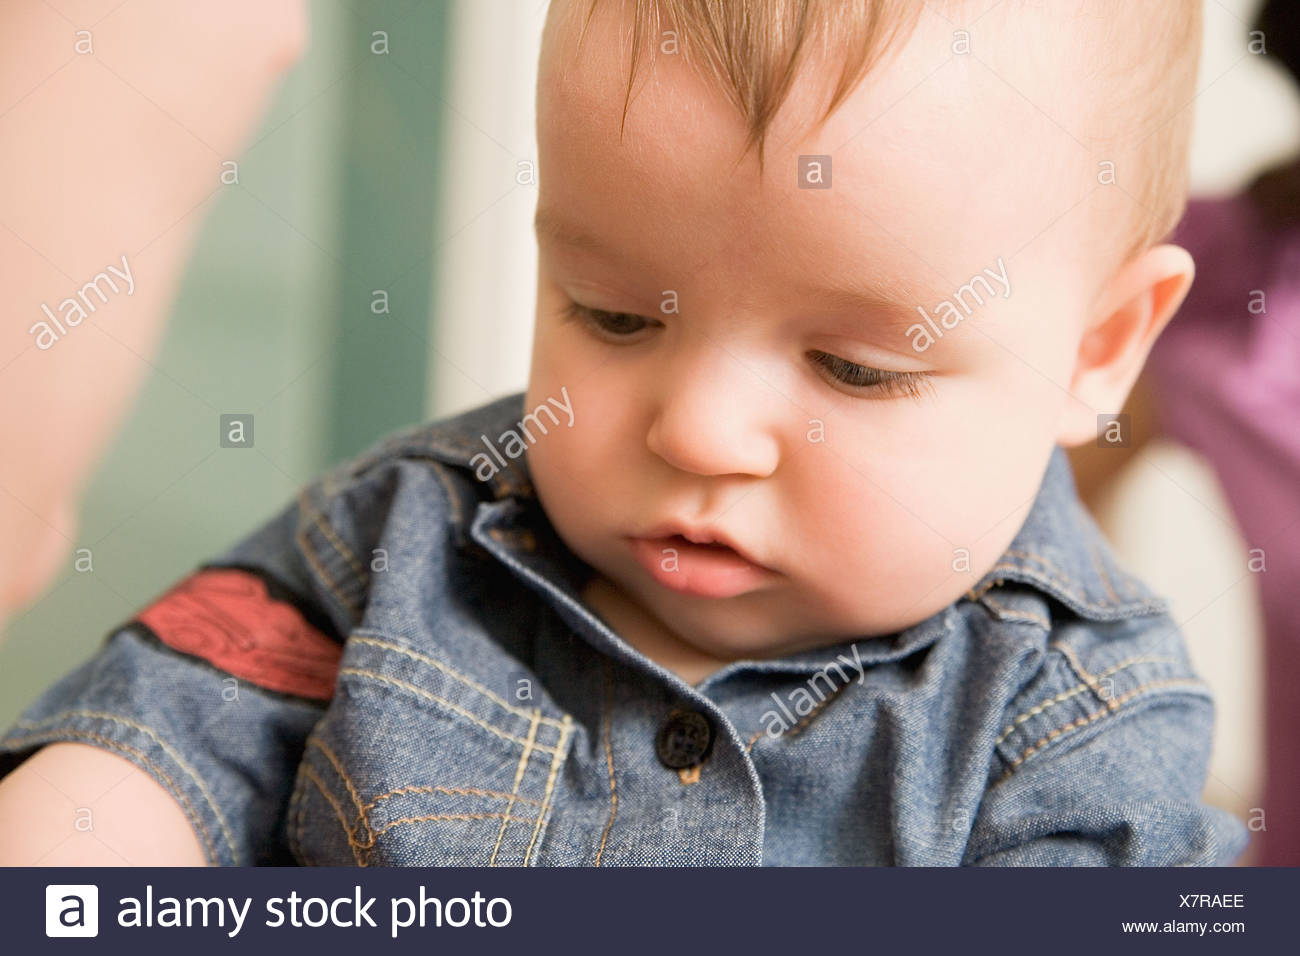 Baby in a denim jacket - Stock Image